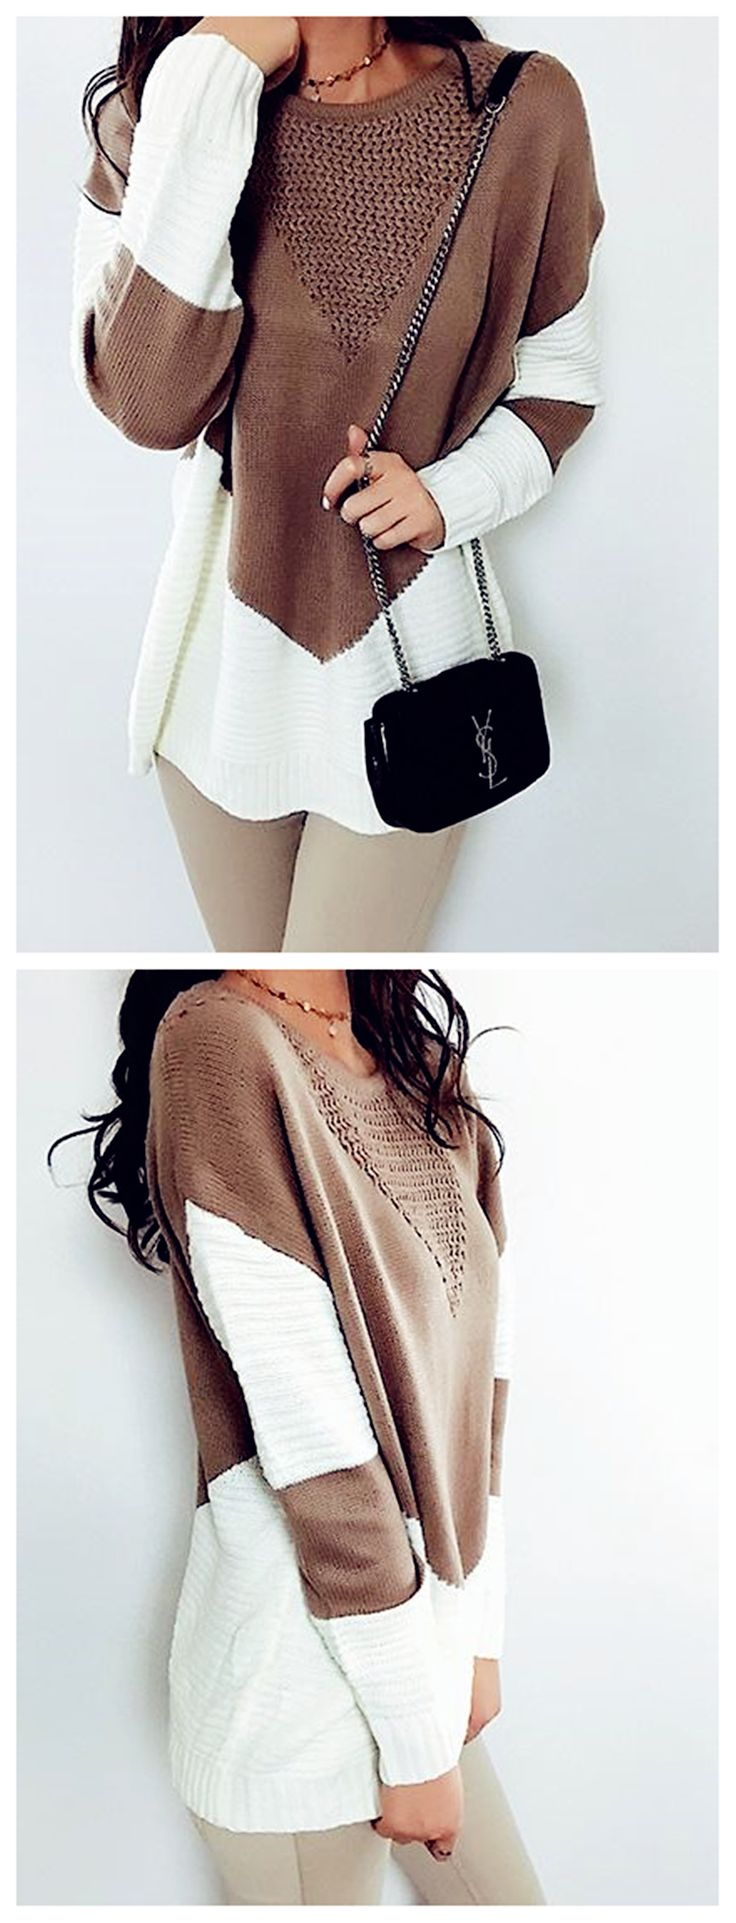 Occasions: This sweater is good for daily wear, school, office or outdoor activities.